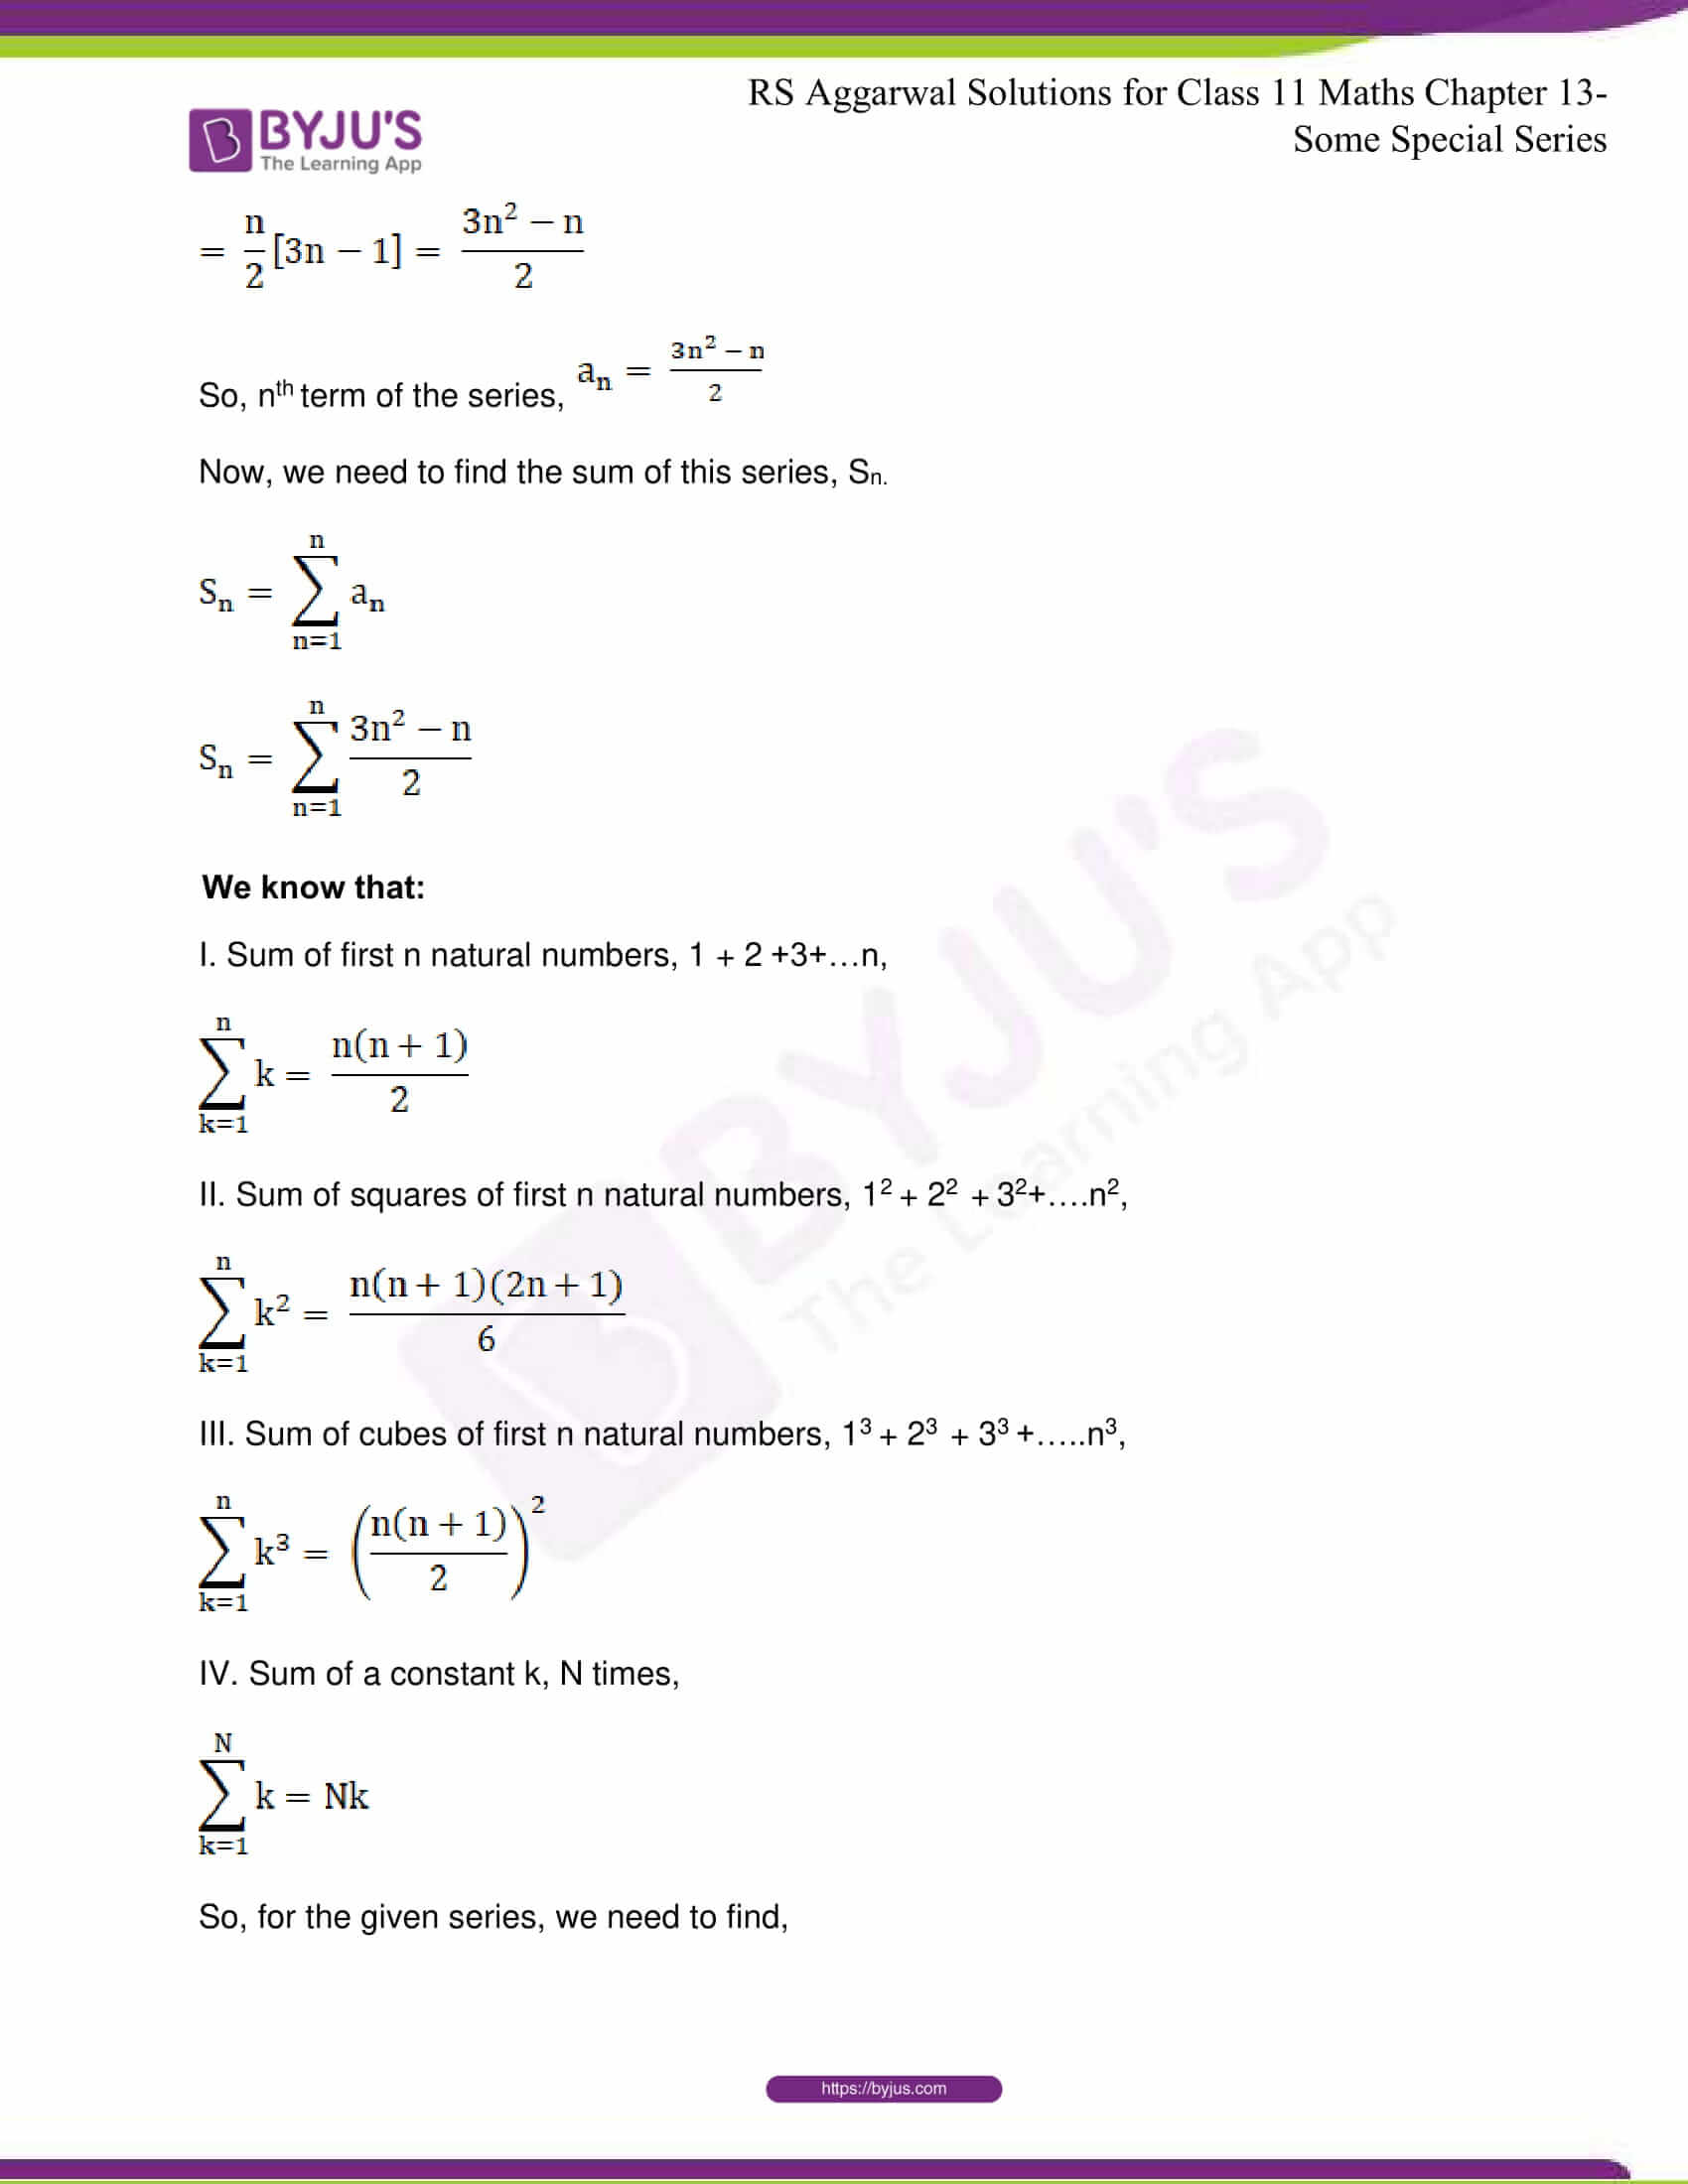 rsaggarwal solutions class 11 maths chapter 13 41